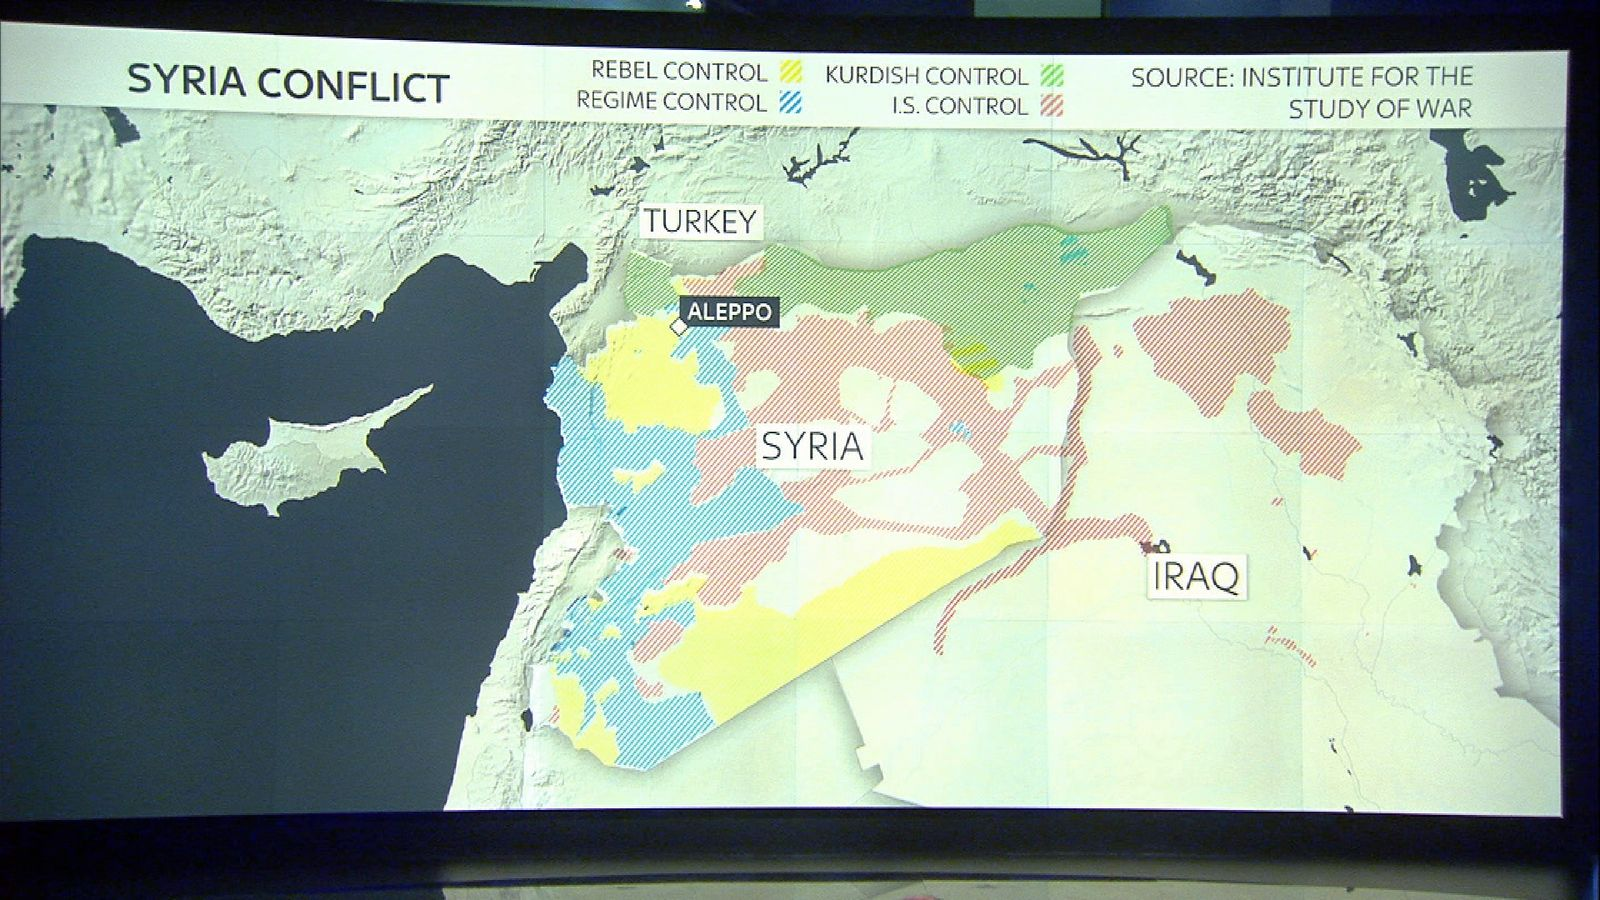 The current situation in Syria